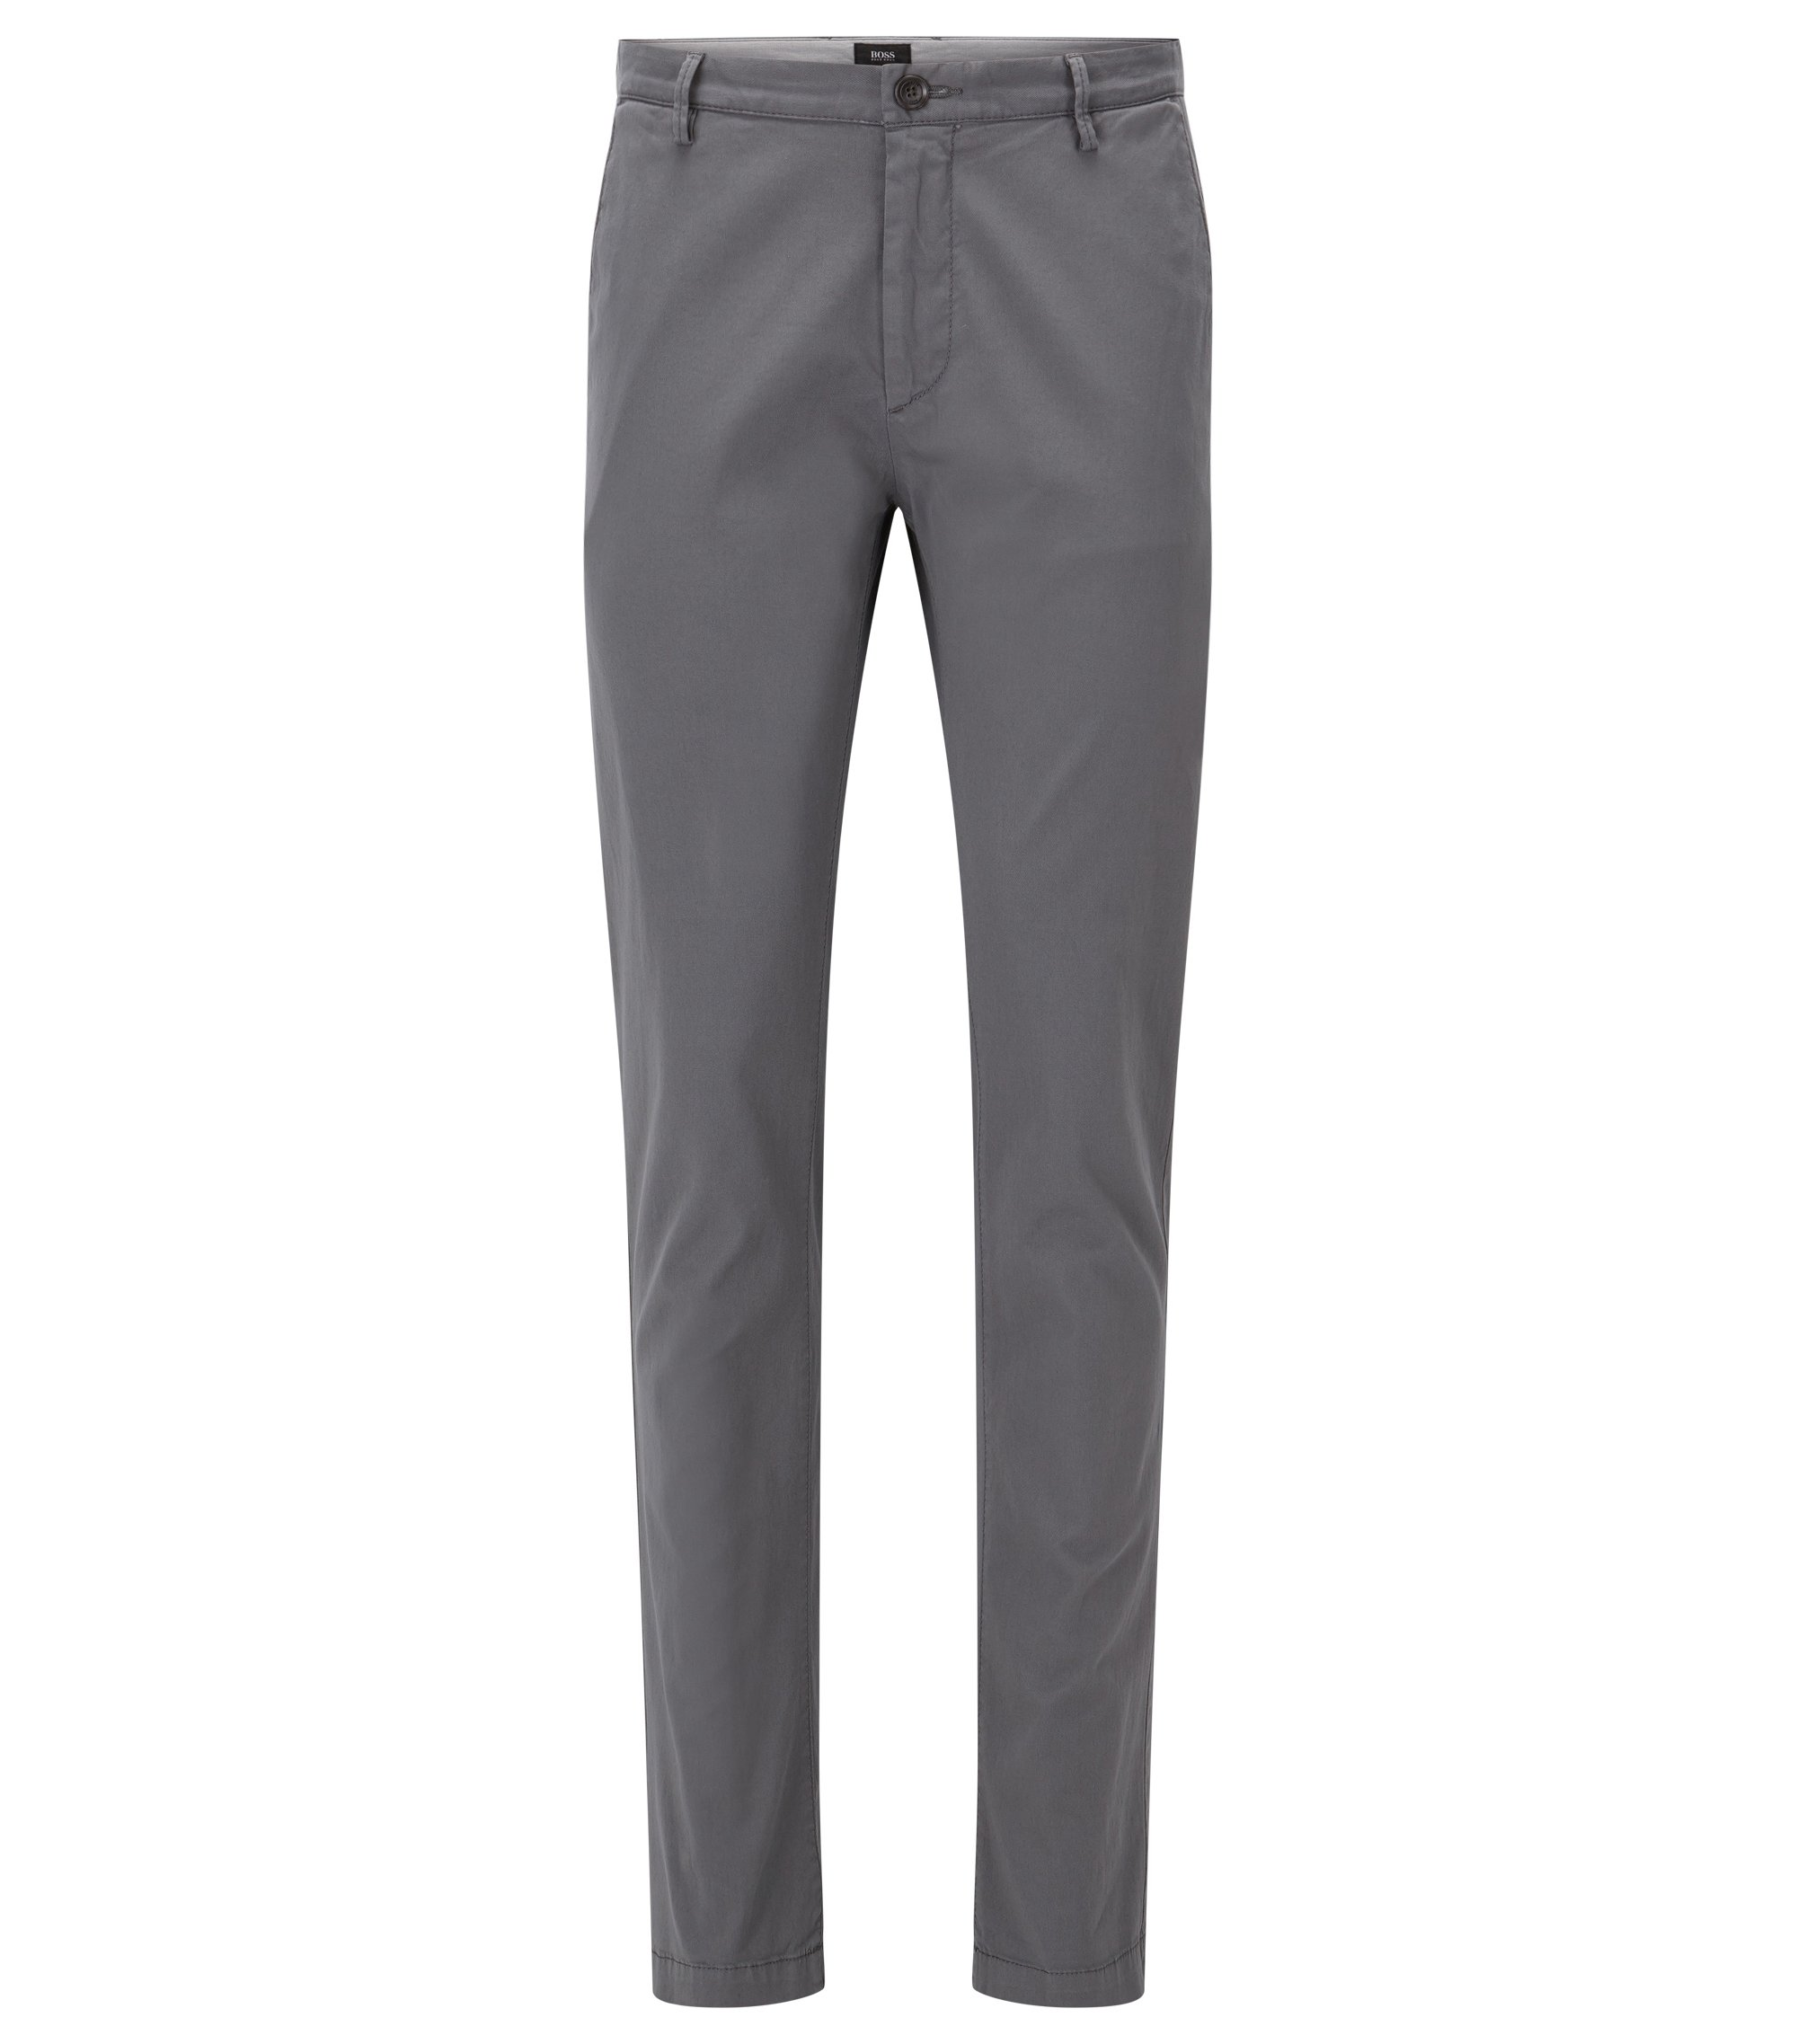 Cotton Stretch Chino Pant, Slim Fit | Rice D, Open Grey